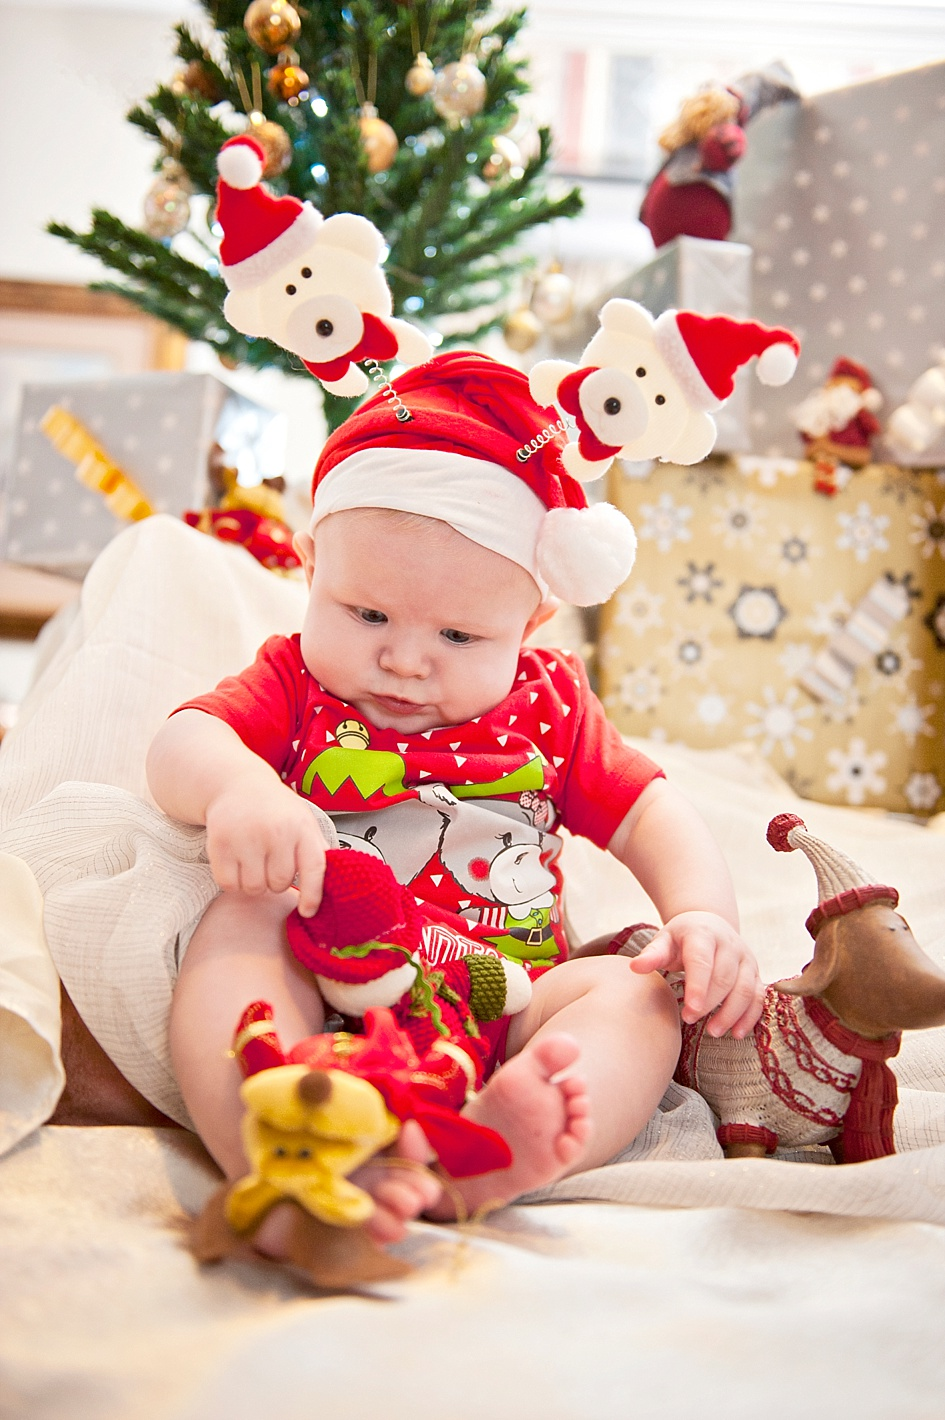 cute-christmas-baby-shoot-ideas.jpg